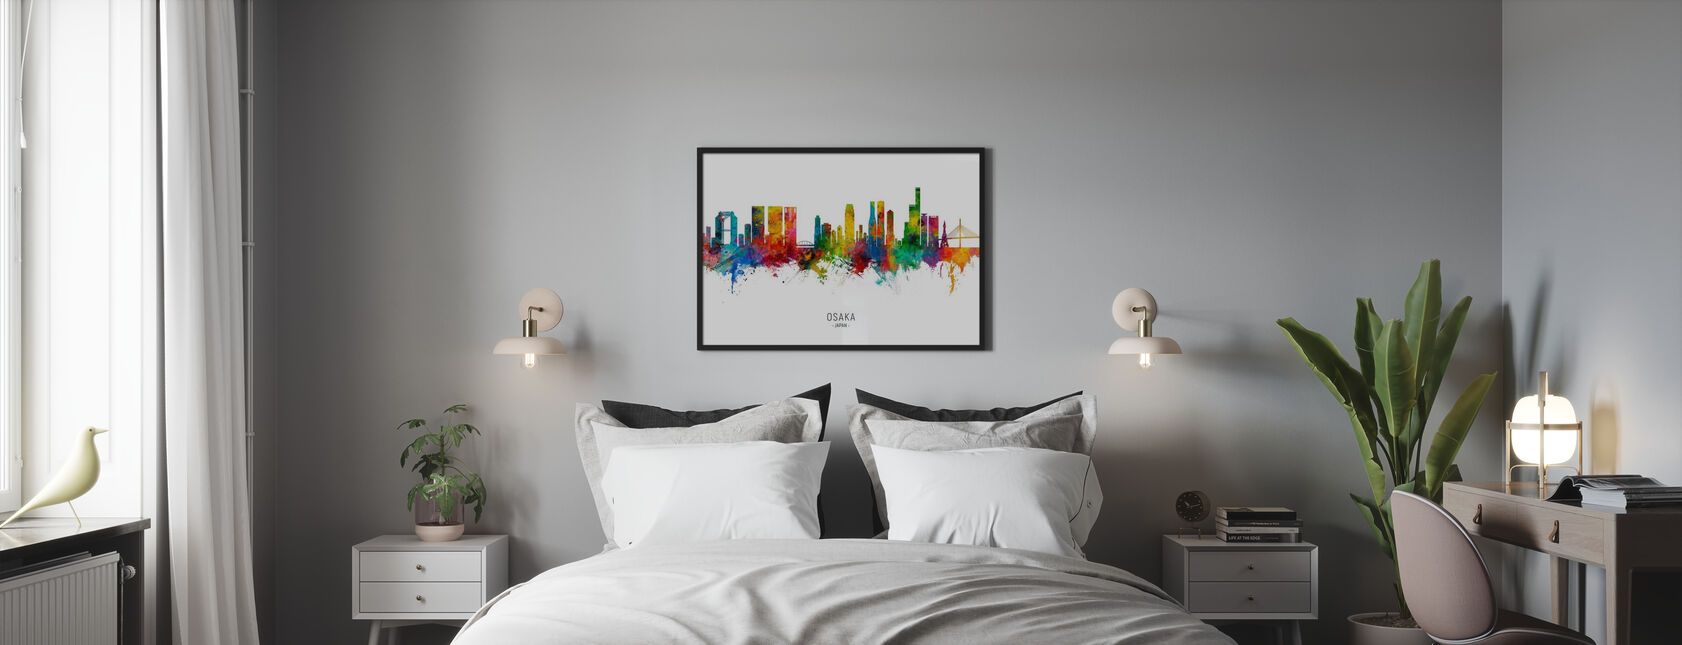 Osaka Japan Skyline - Framed print - Bedroom